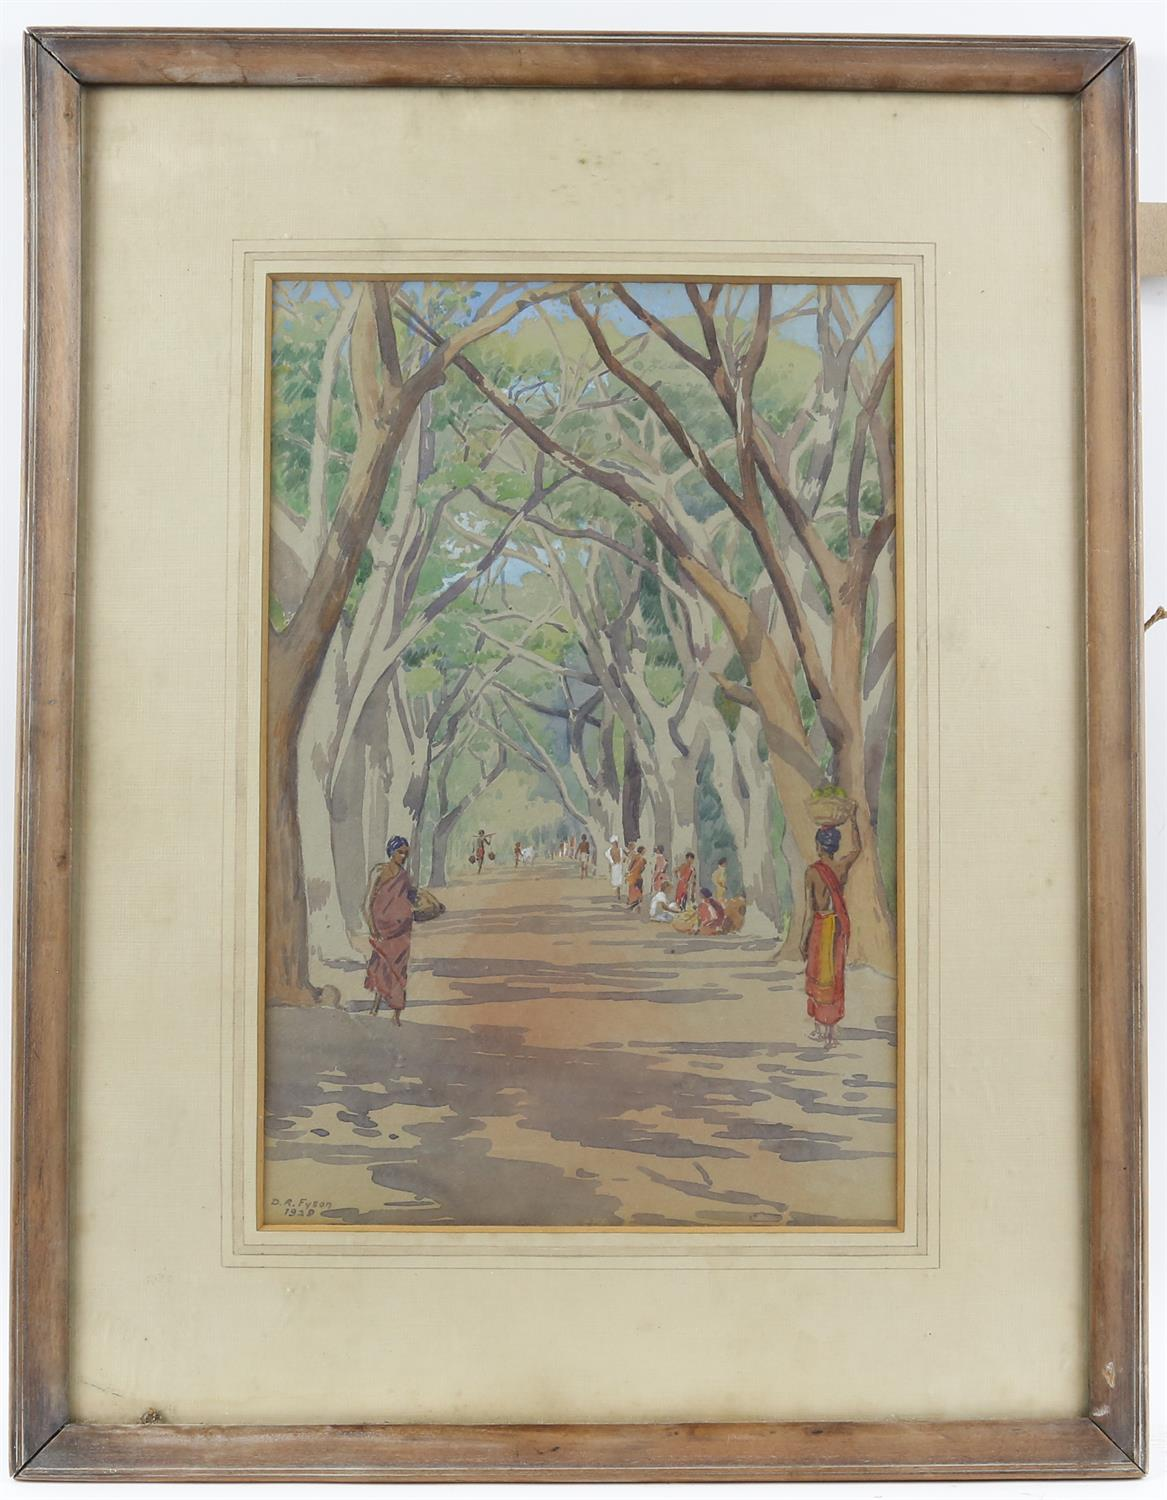 D R Fyson, British 1886-1947, Indian tree covered road with figures, signed and dated 1929, - Image 2 of 3